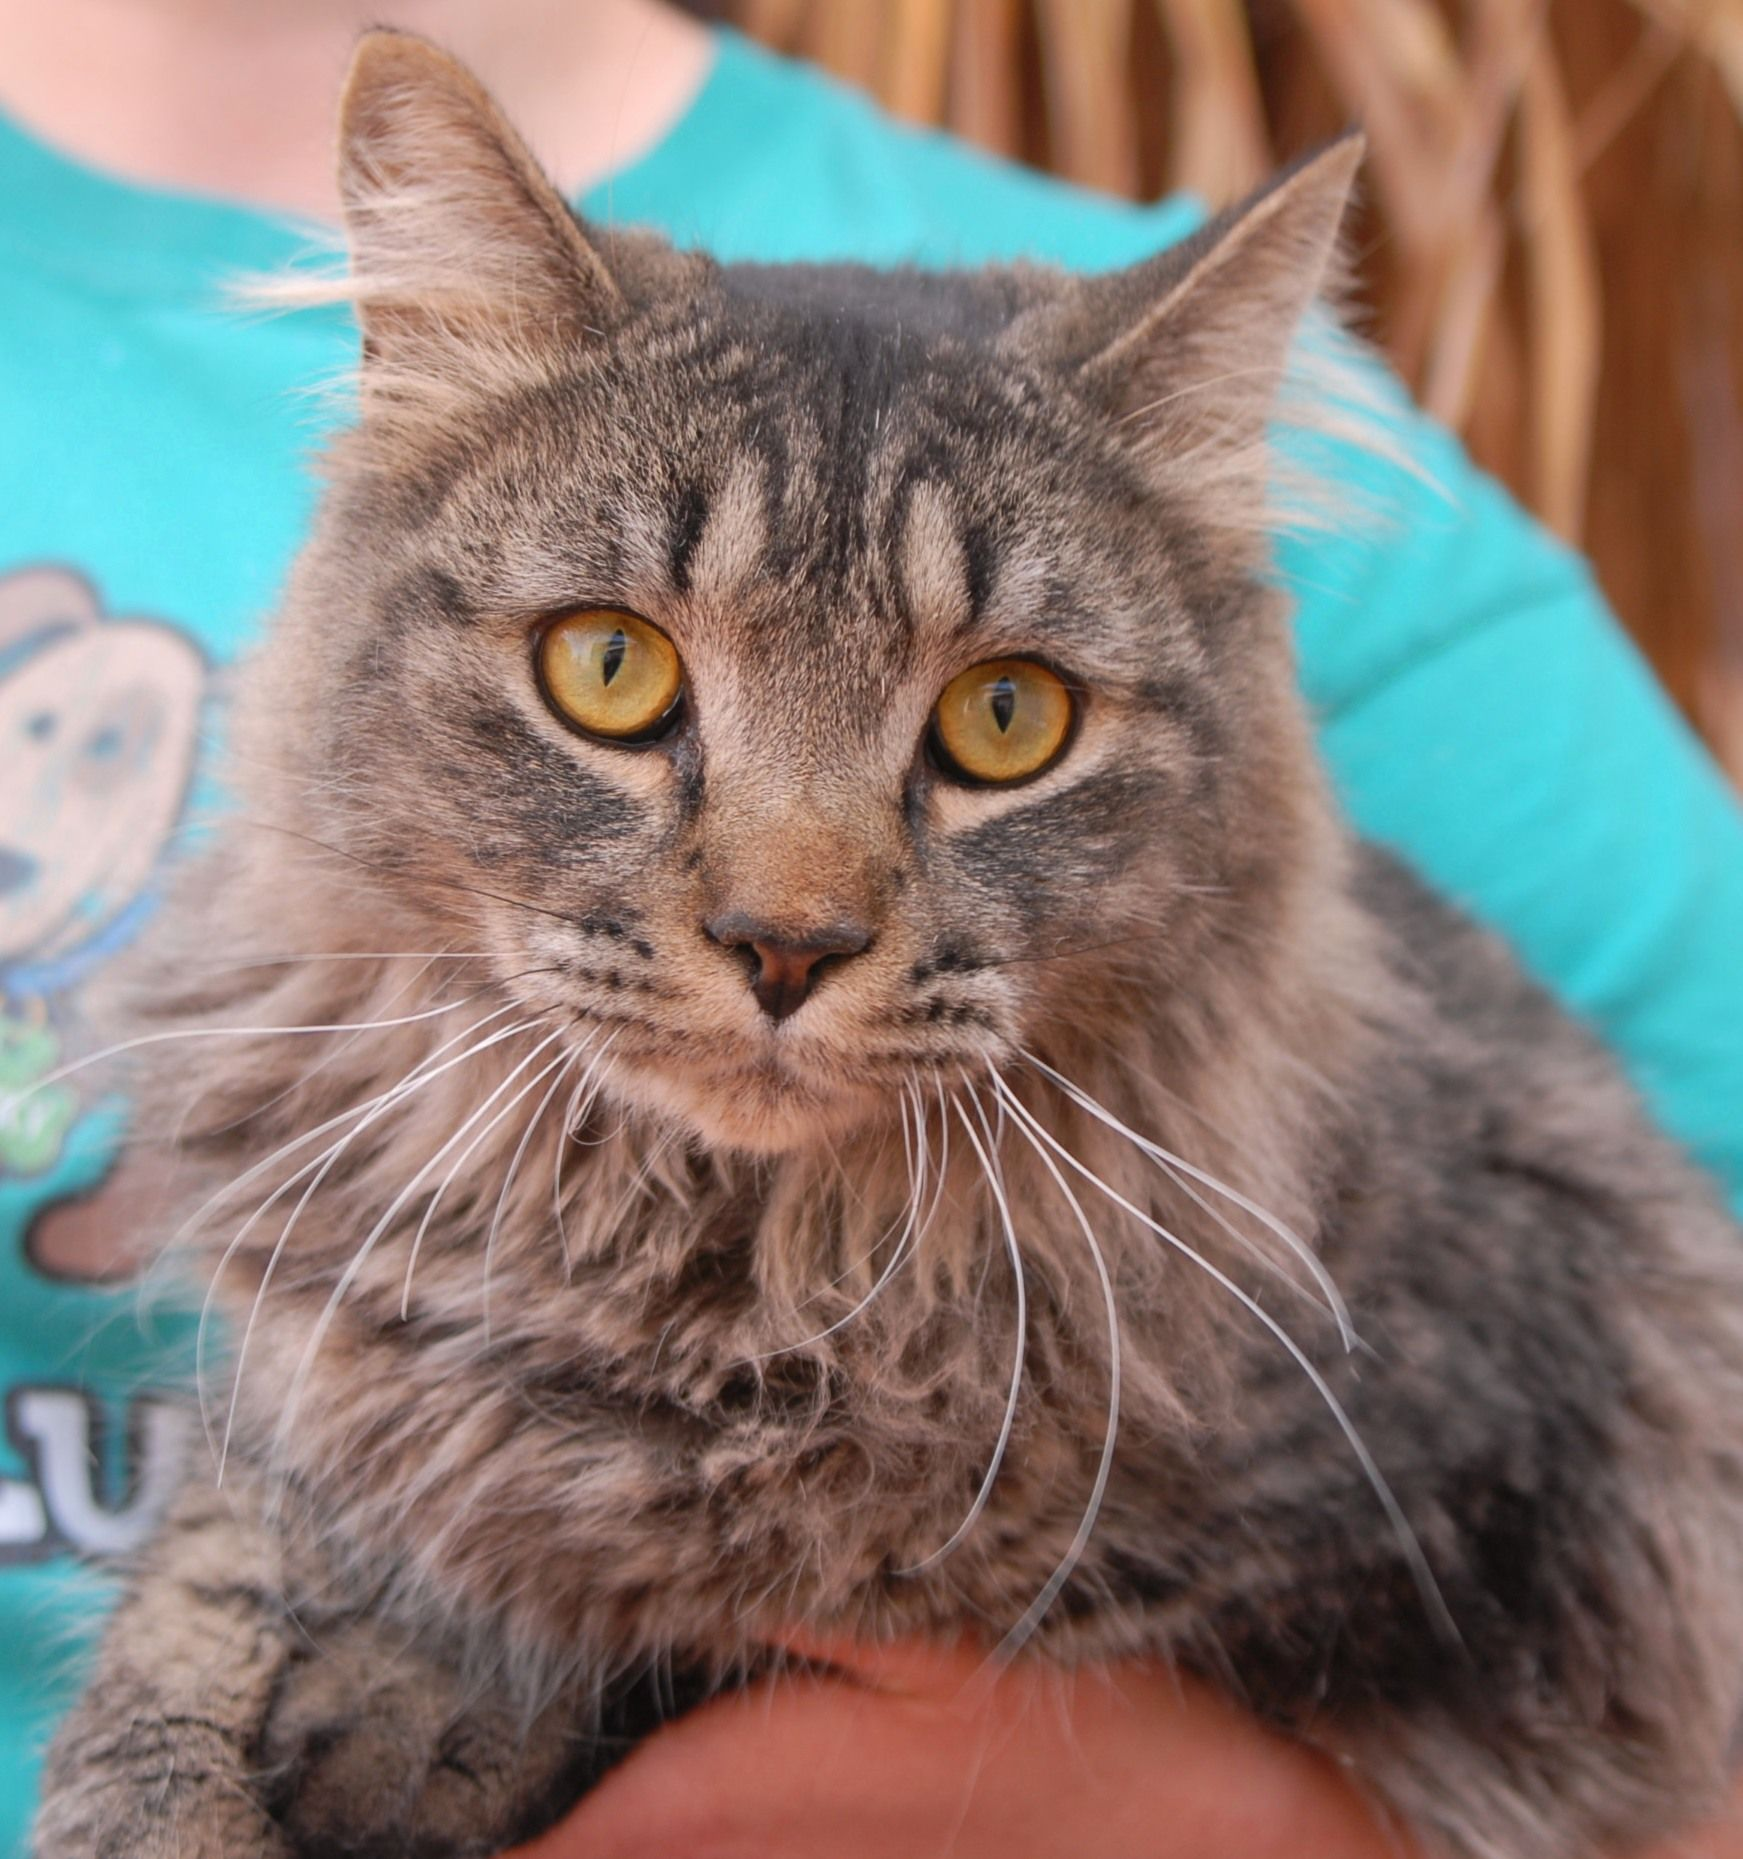 Christian is a docile youngster who loves belly rubs and